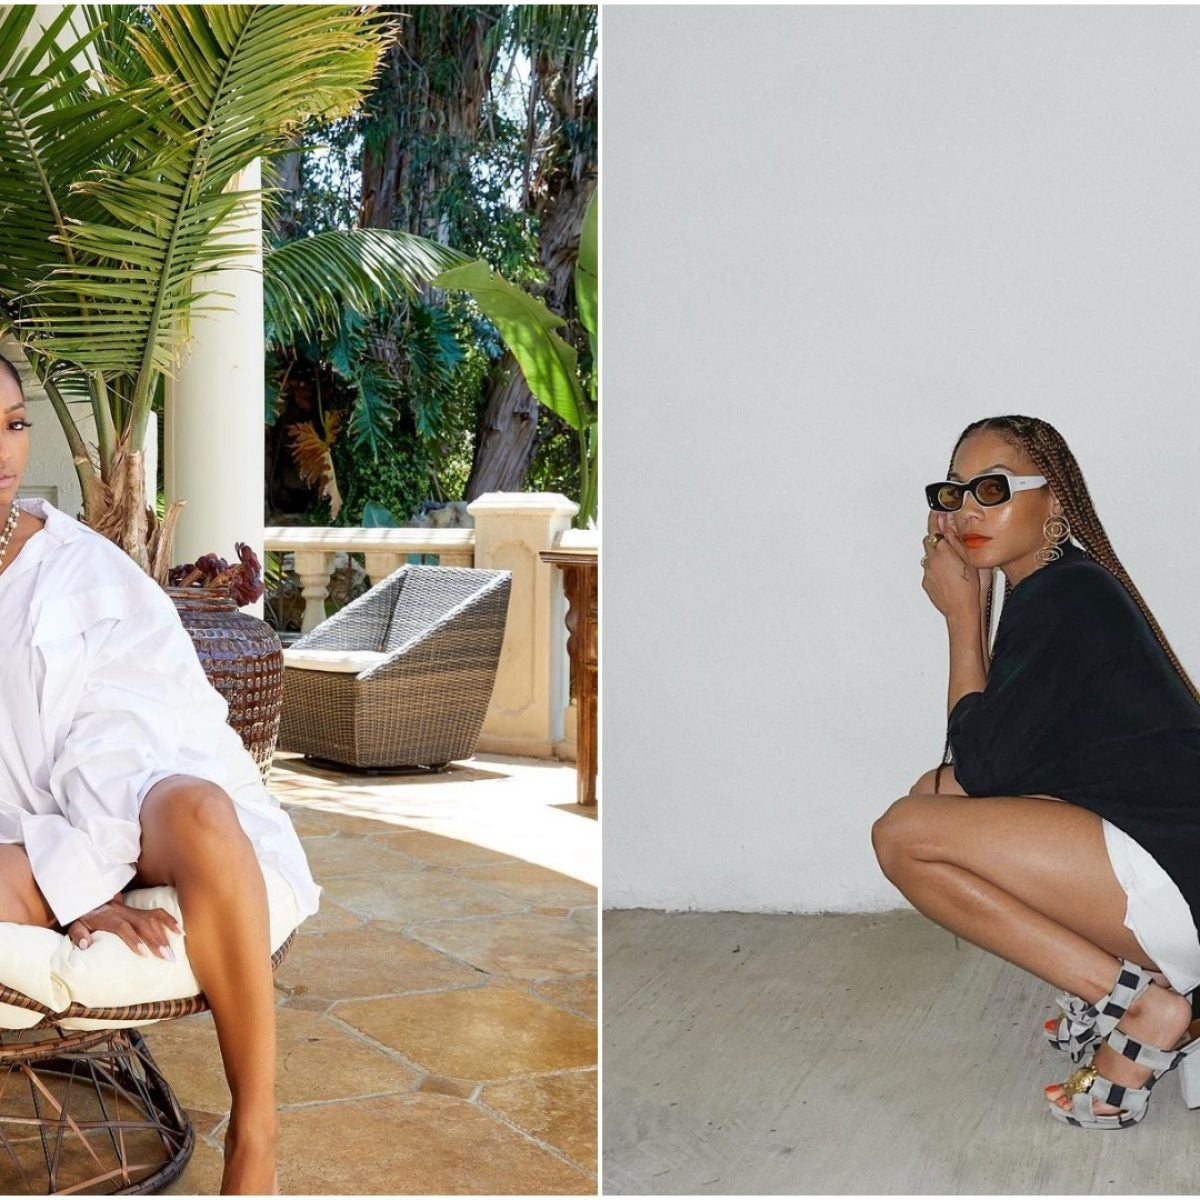 Besidone Amoruwa Reveals Trending Conversations About Black Fashion And Beauty On Instagram - EXCLUSIVE